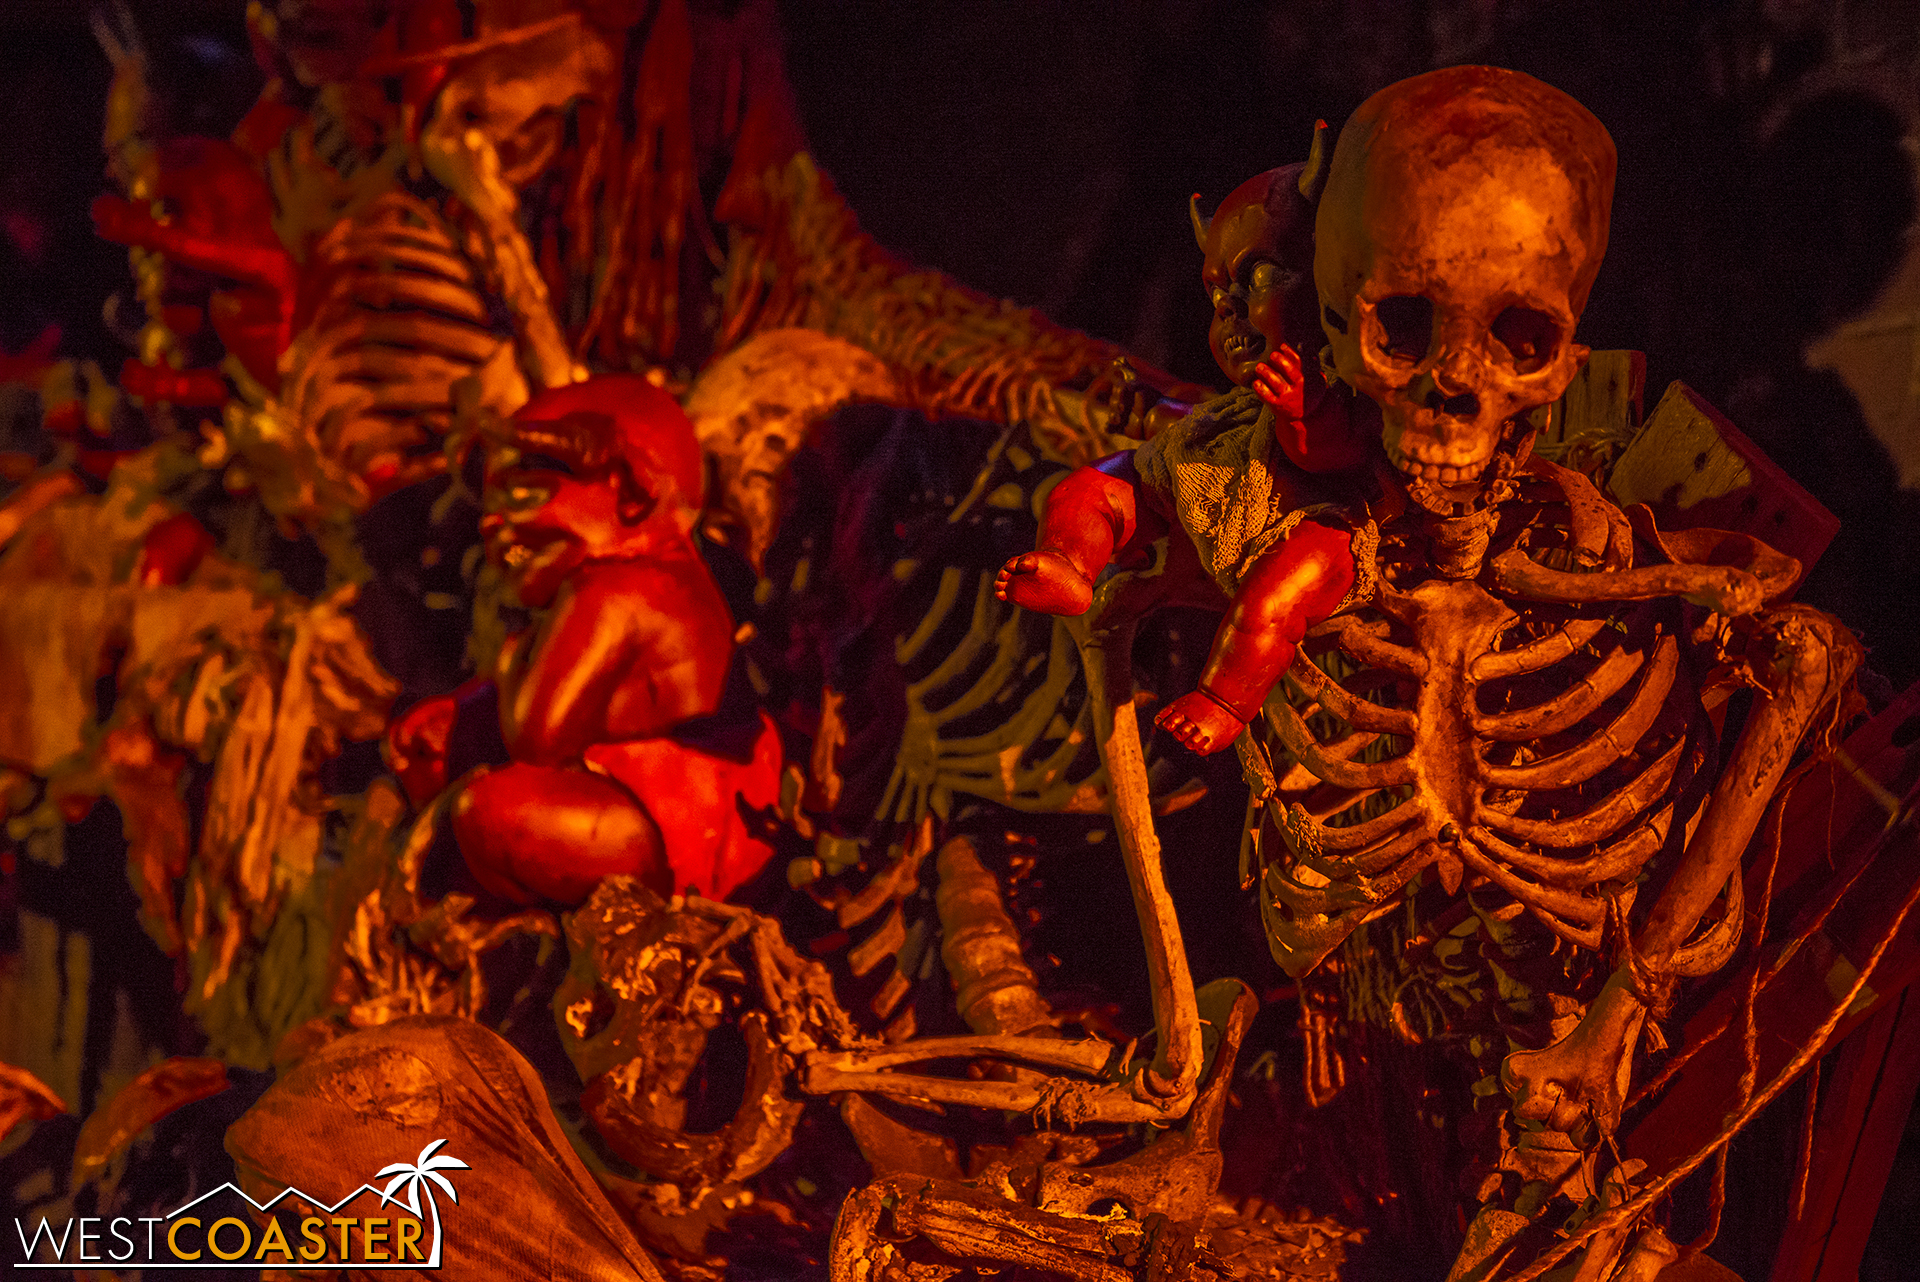 The Urban Inferno scare zone was a gauntlet through hellish theming and monsters.